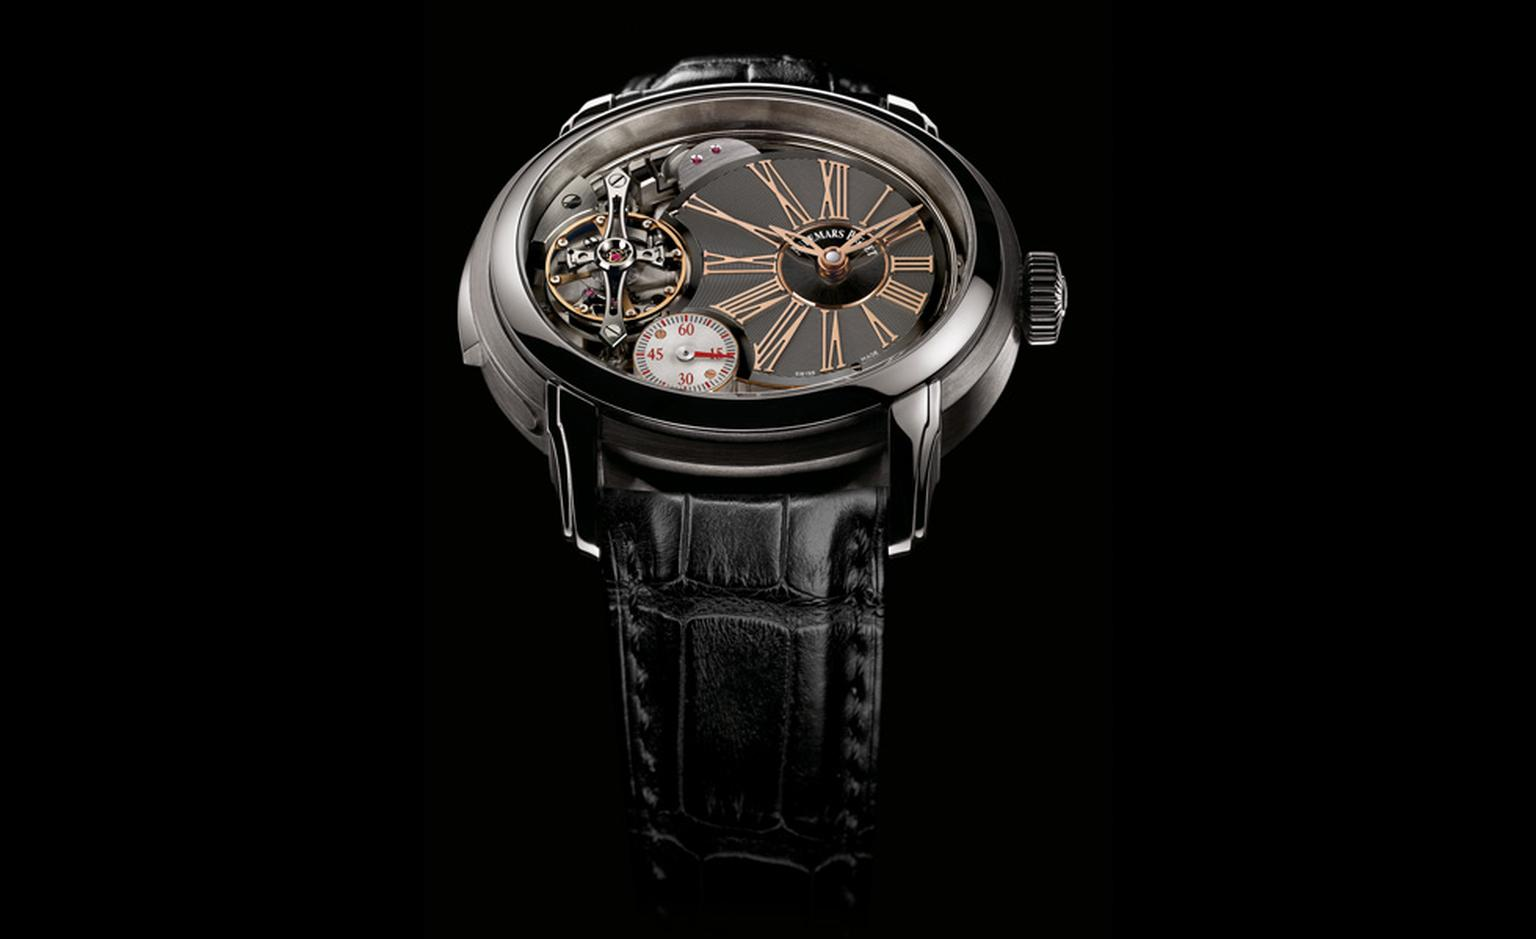 Audemars Piguet Millenary hand wound minute repeater for 2011